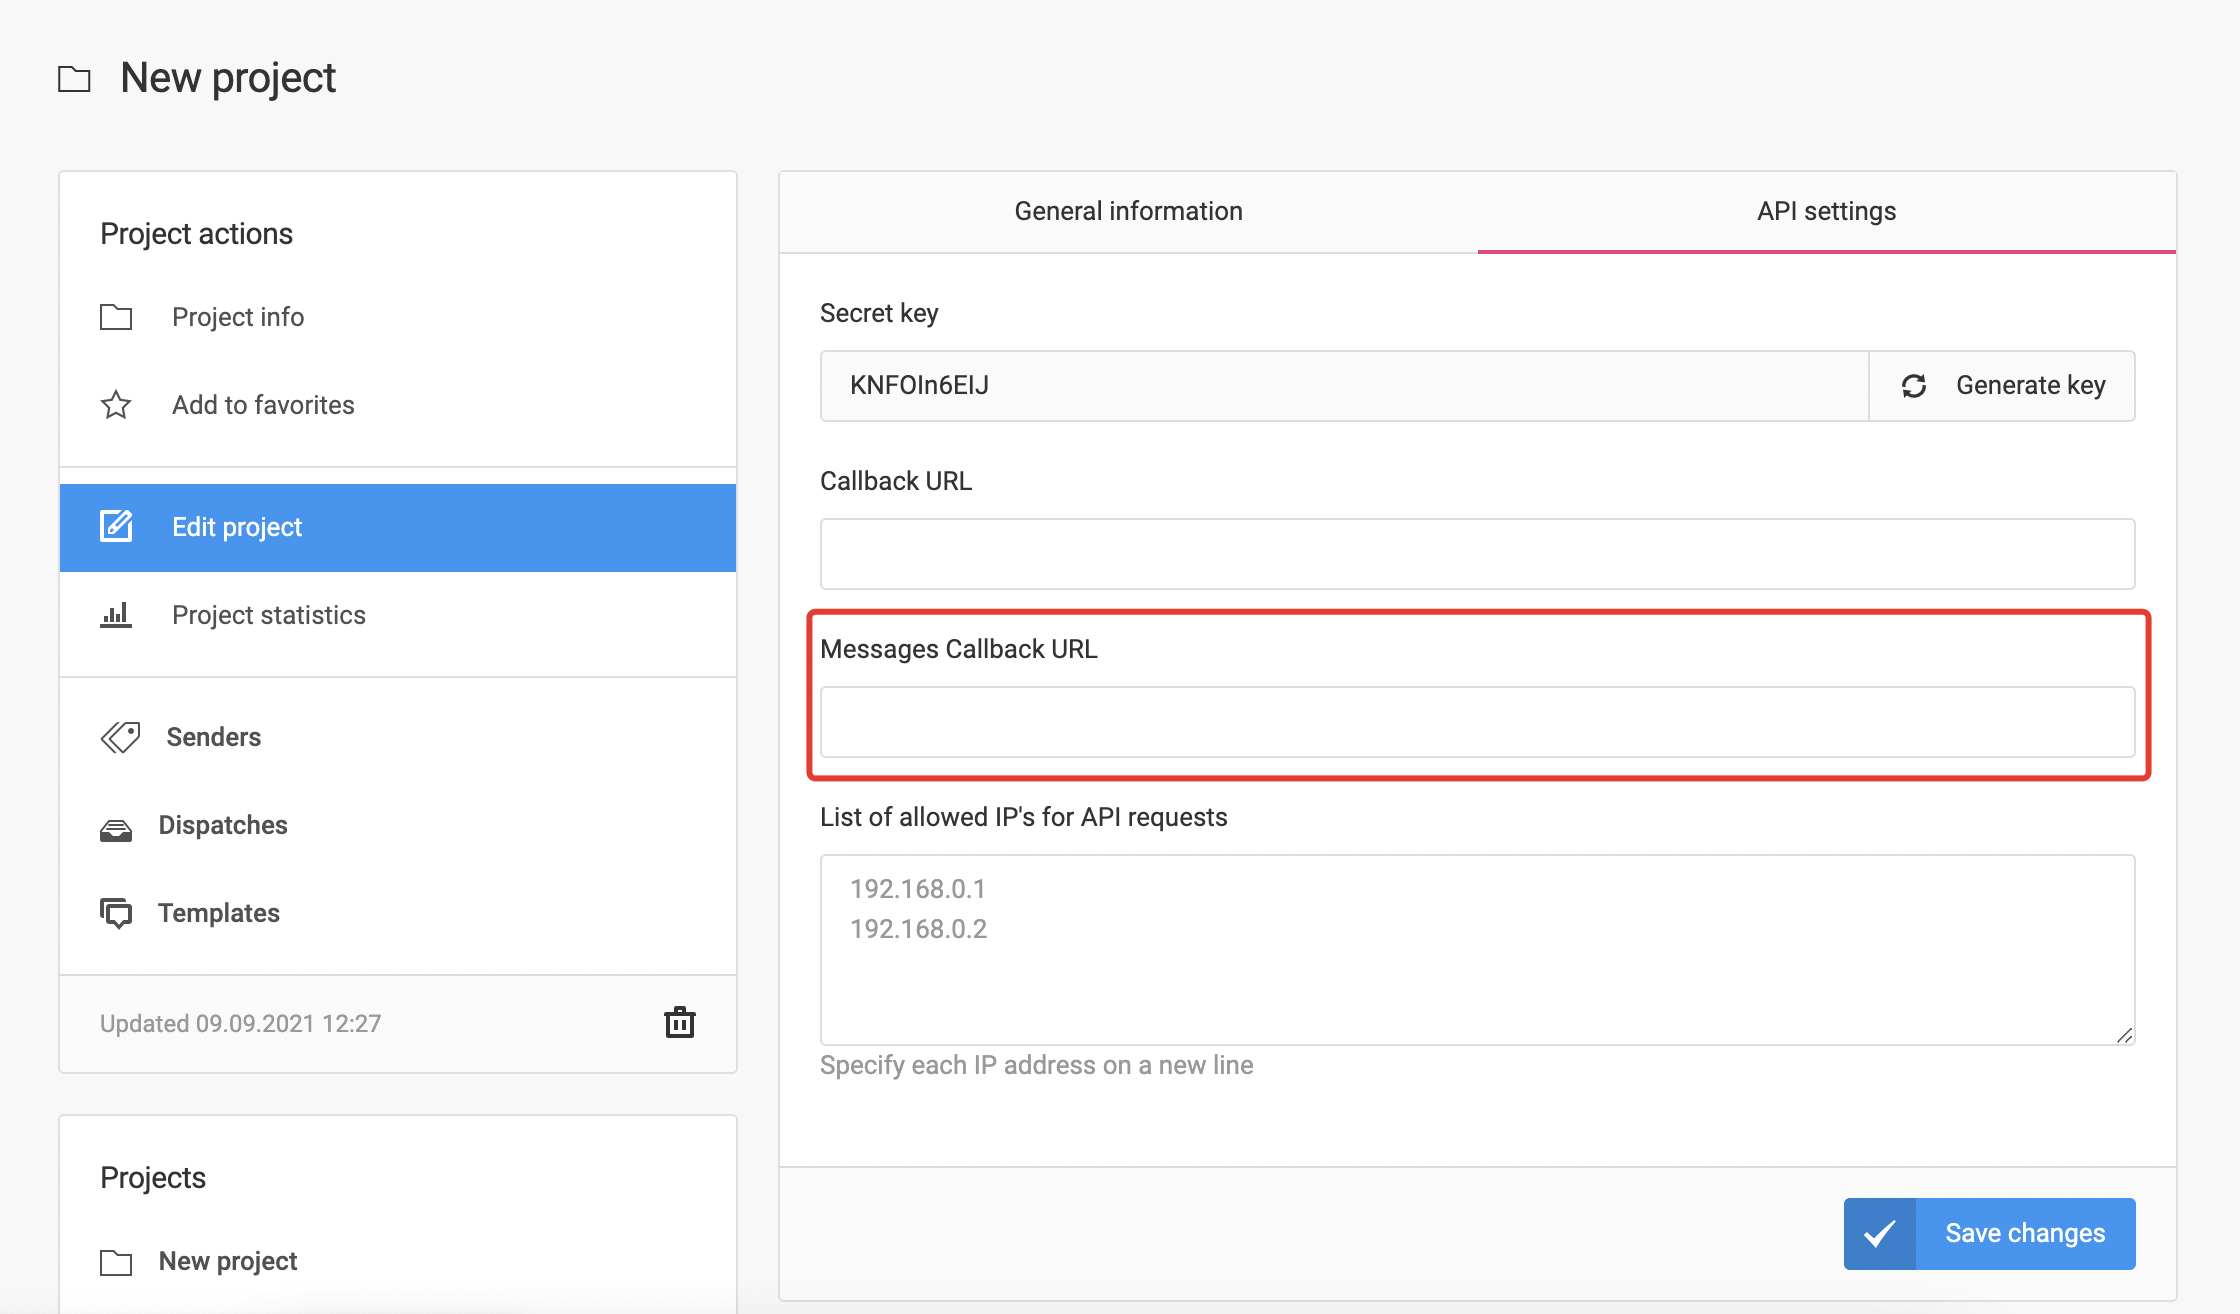 To receive incoming messages, specify the Callback URL in the project setting in Messaggio